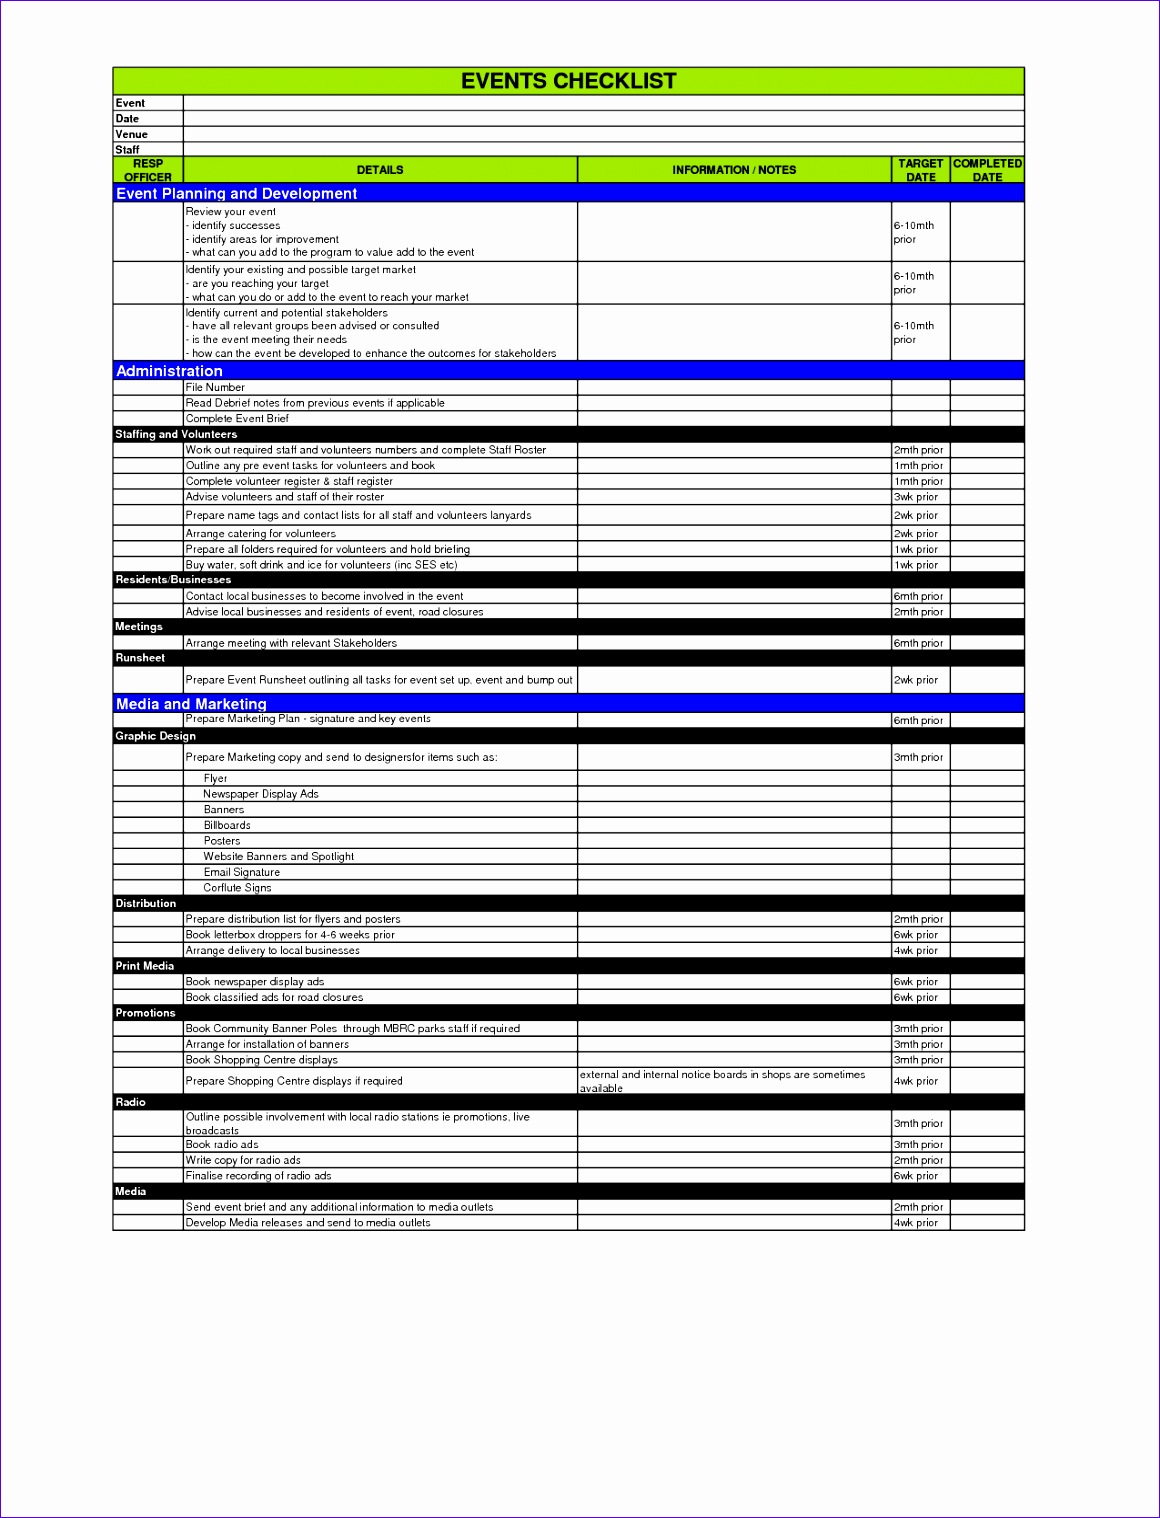 6 event Planning Template Excel - ExcelTemplates - ExcelTemplates